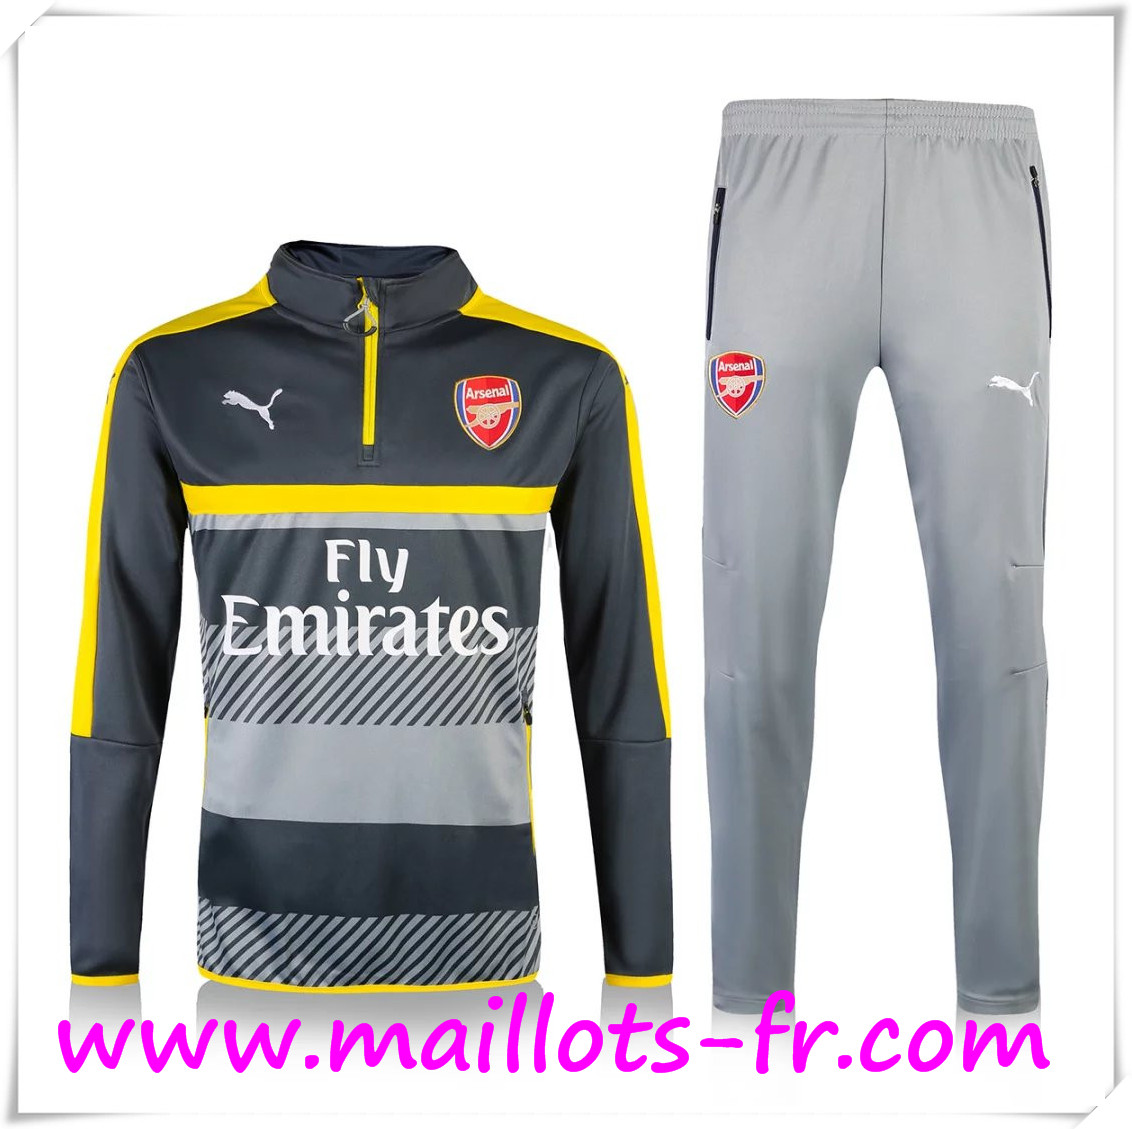 maillots-fr: Nouveau Survetement de foot Arsenal Noir/Gris 2016 2017 Ensemble